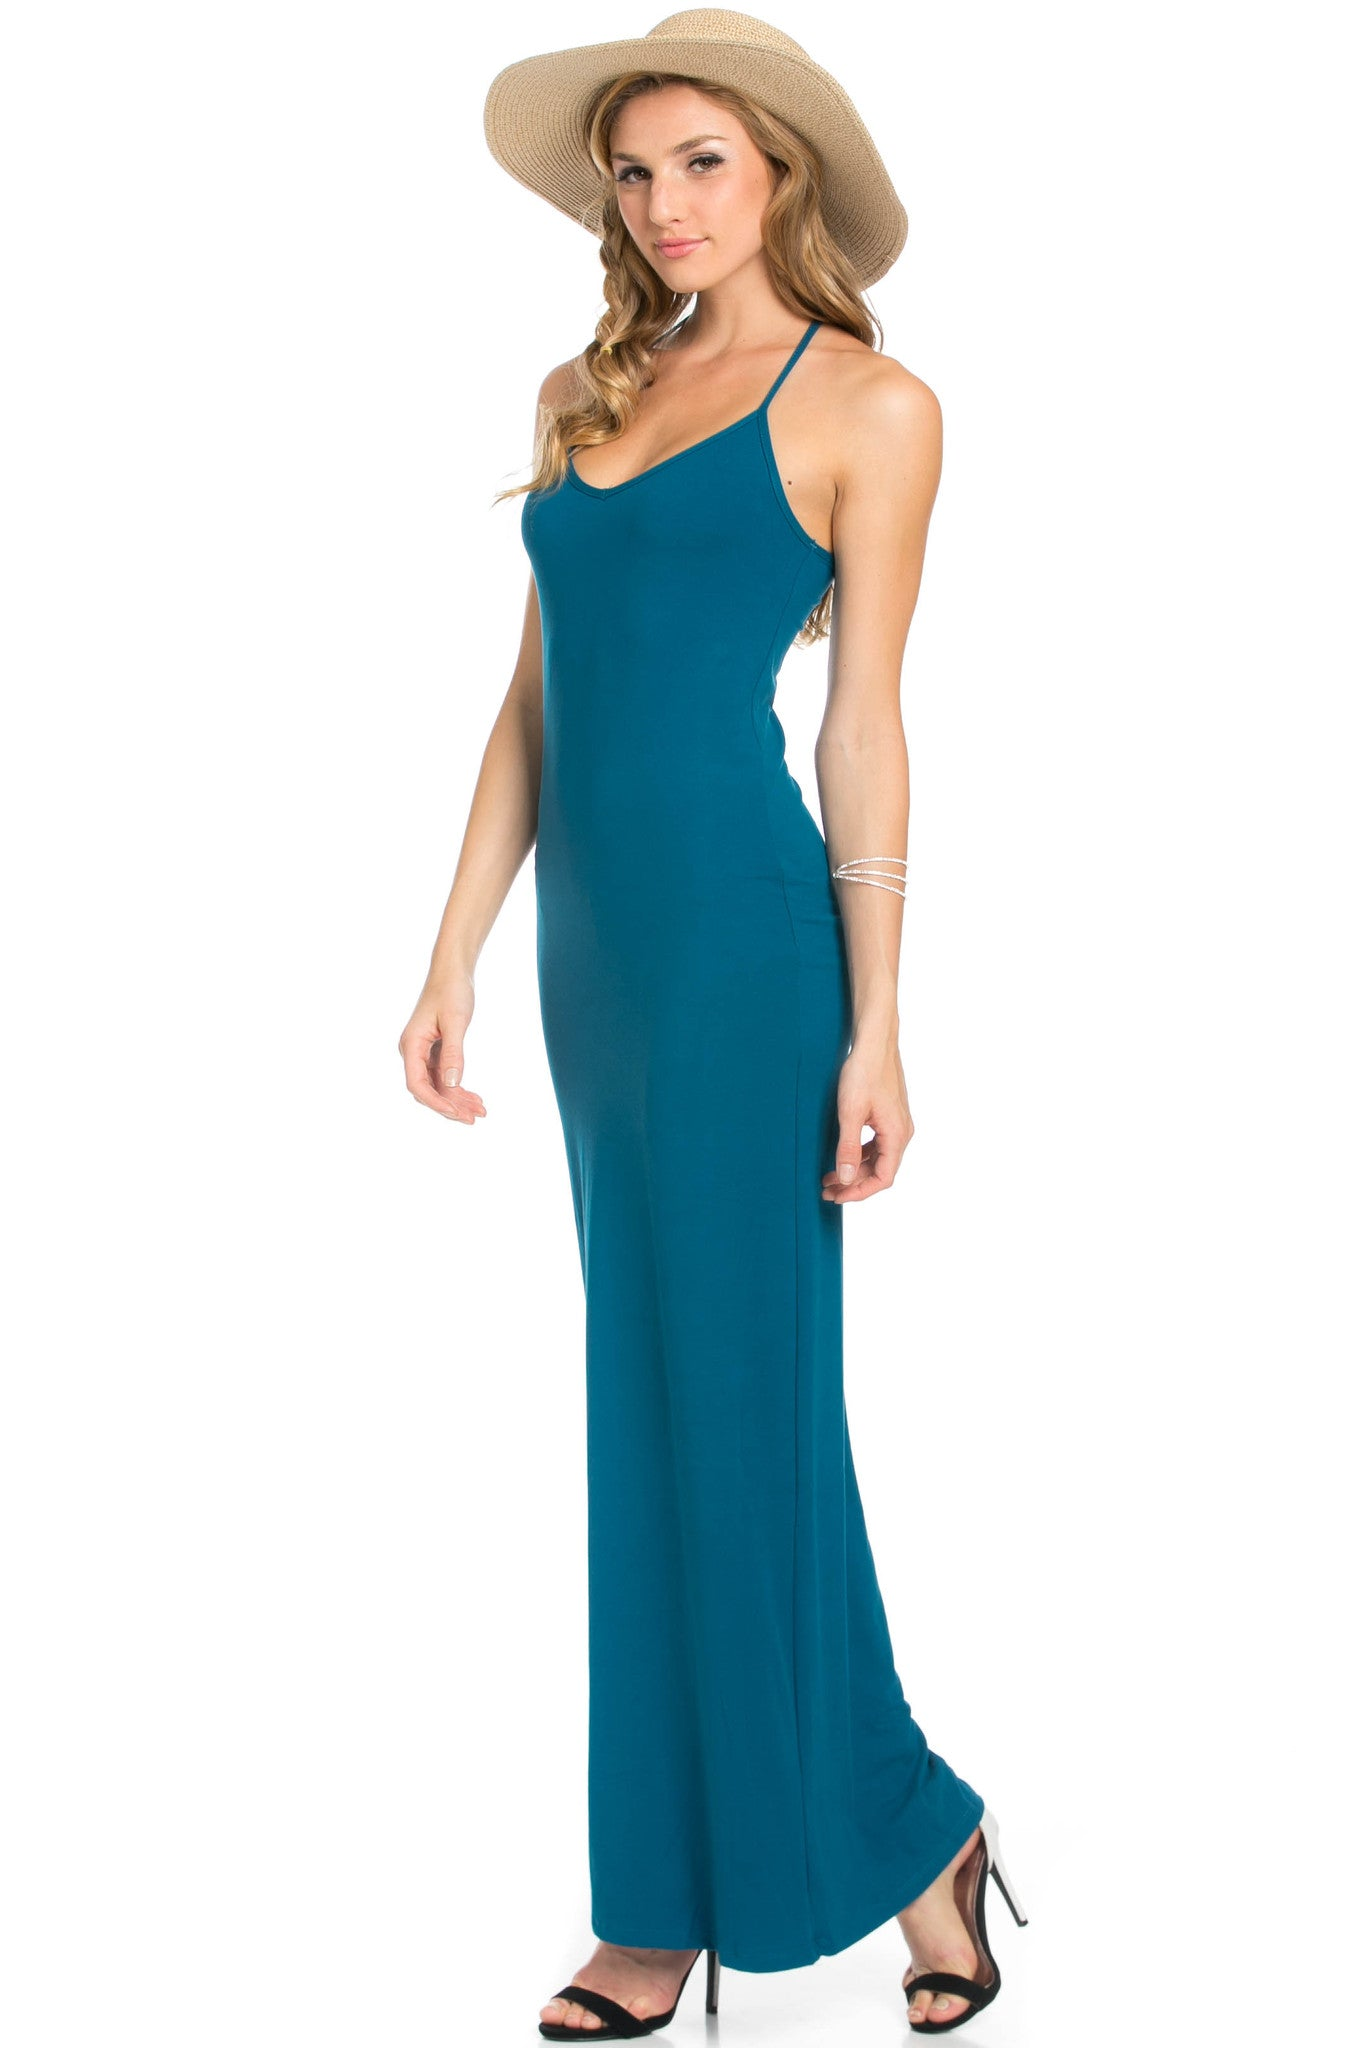 Micro Suede Teal Maxi Dress - Dresses - My Yuccie - 8